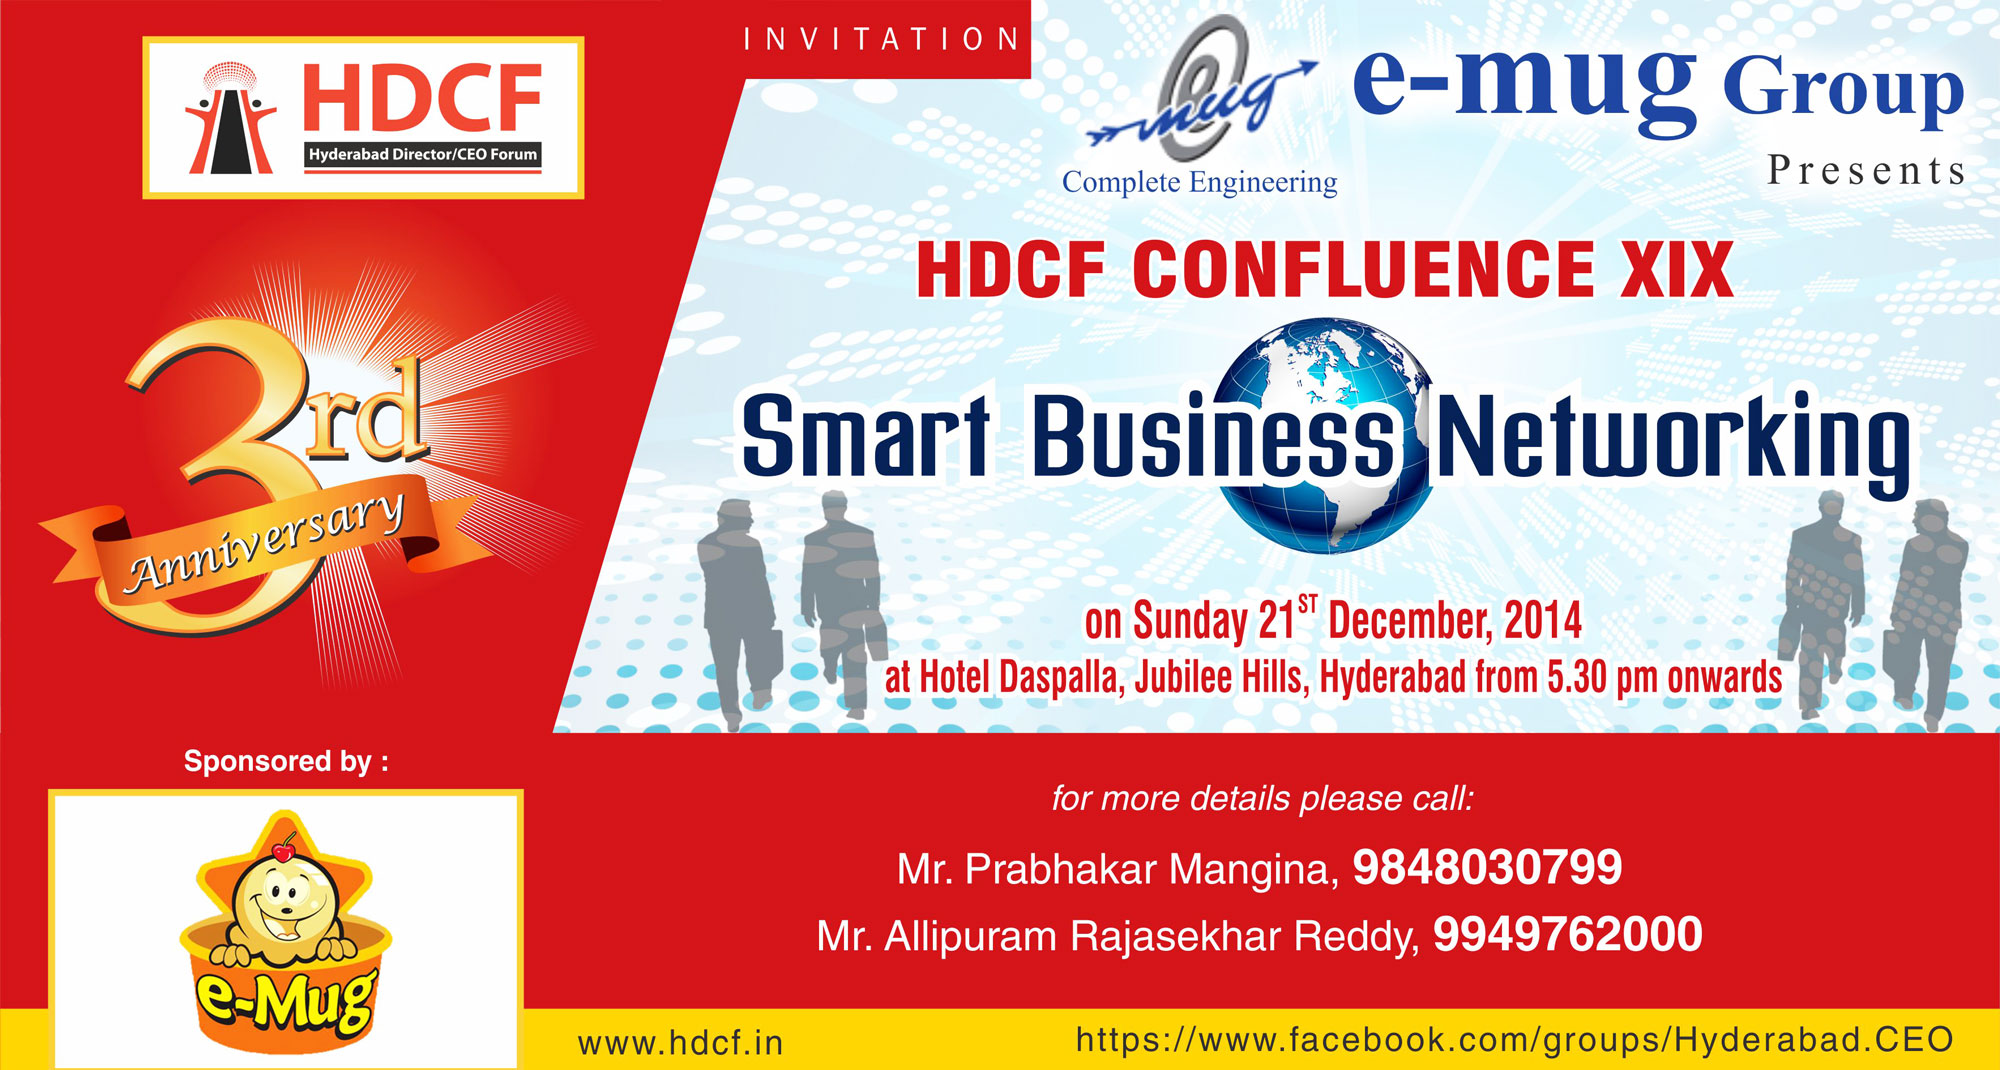 Smart Business Networking - HDCF Confluence XIX